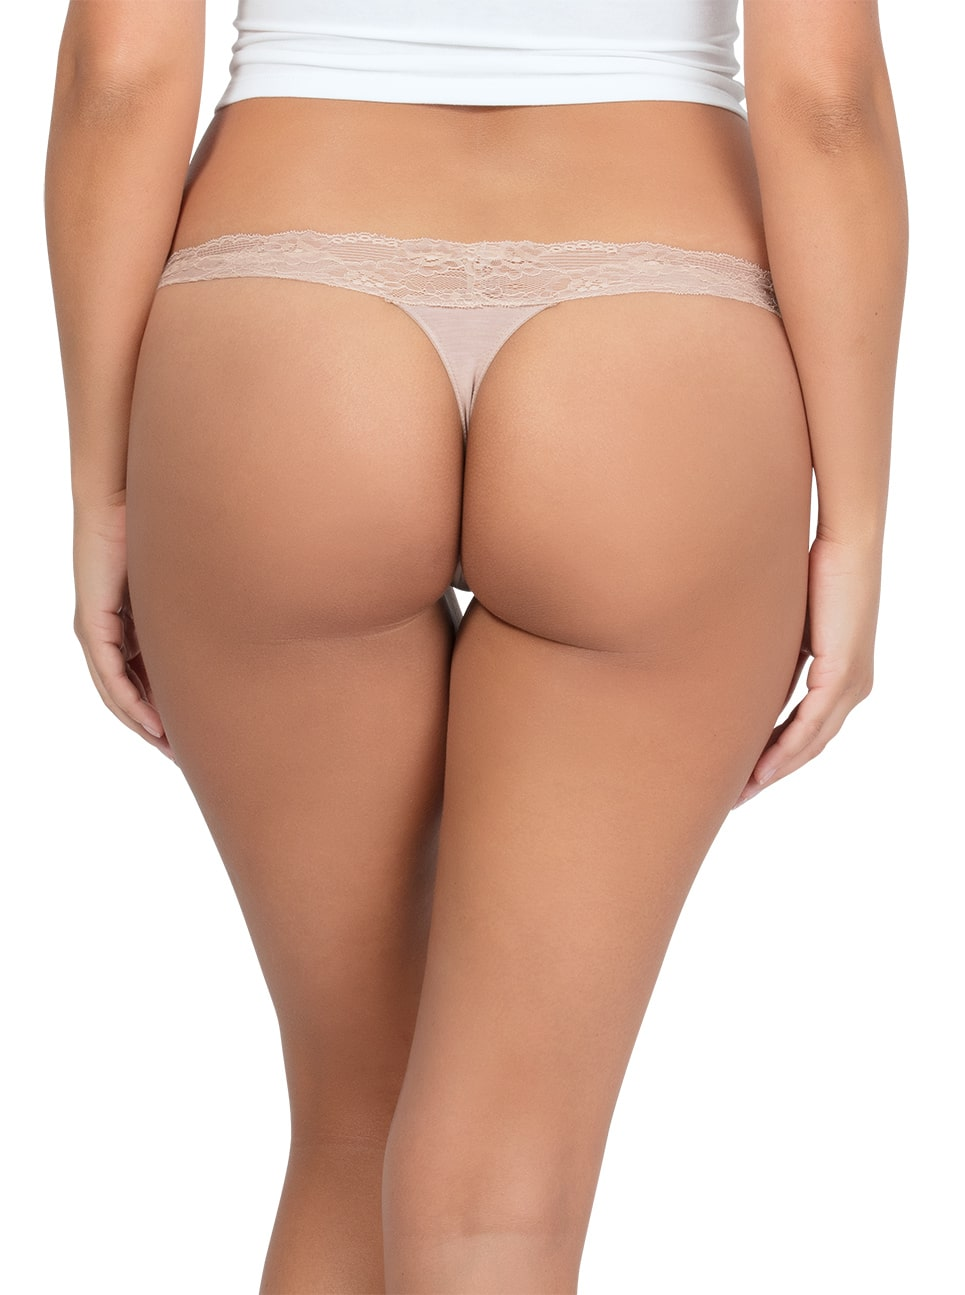 PARFAIT ParfaitPanty SoEssential ThongPP403 Bare Back - Panty So Essential Thong- Bare - PP403